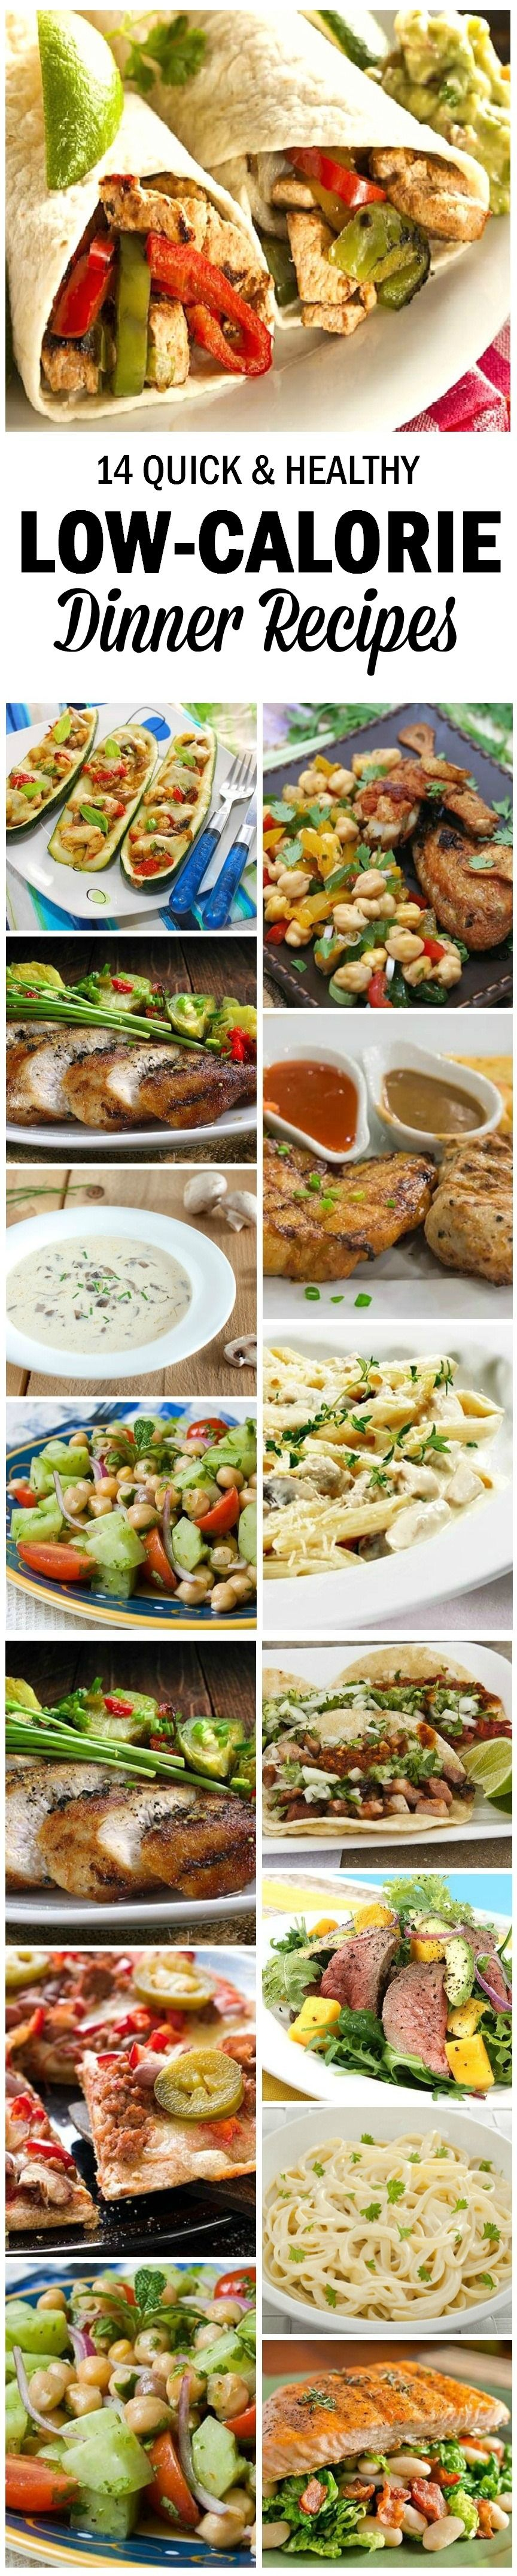 20 Quick And Healthy Low Calorie Dinner Recipes